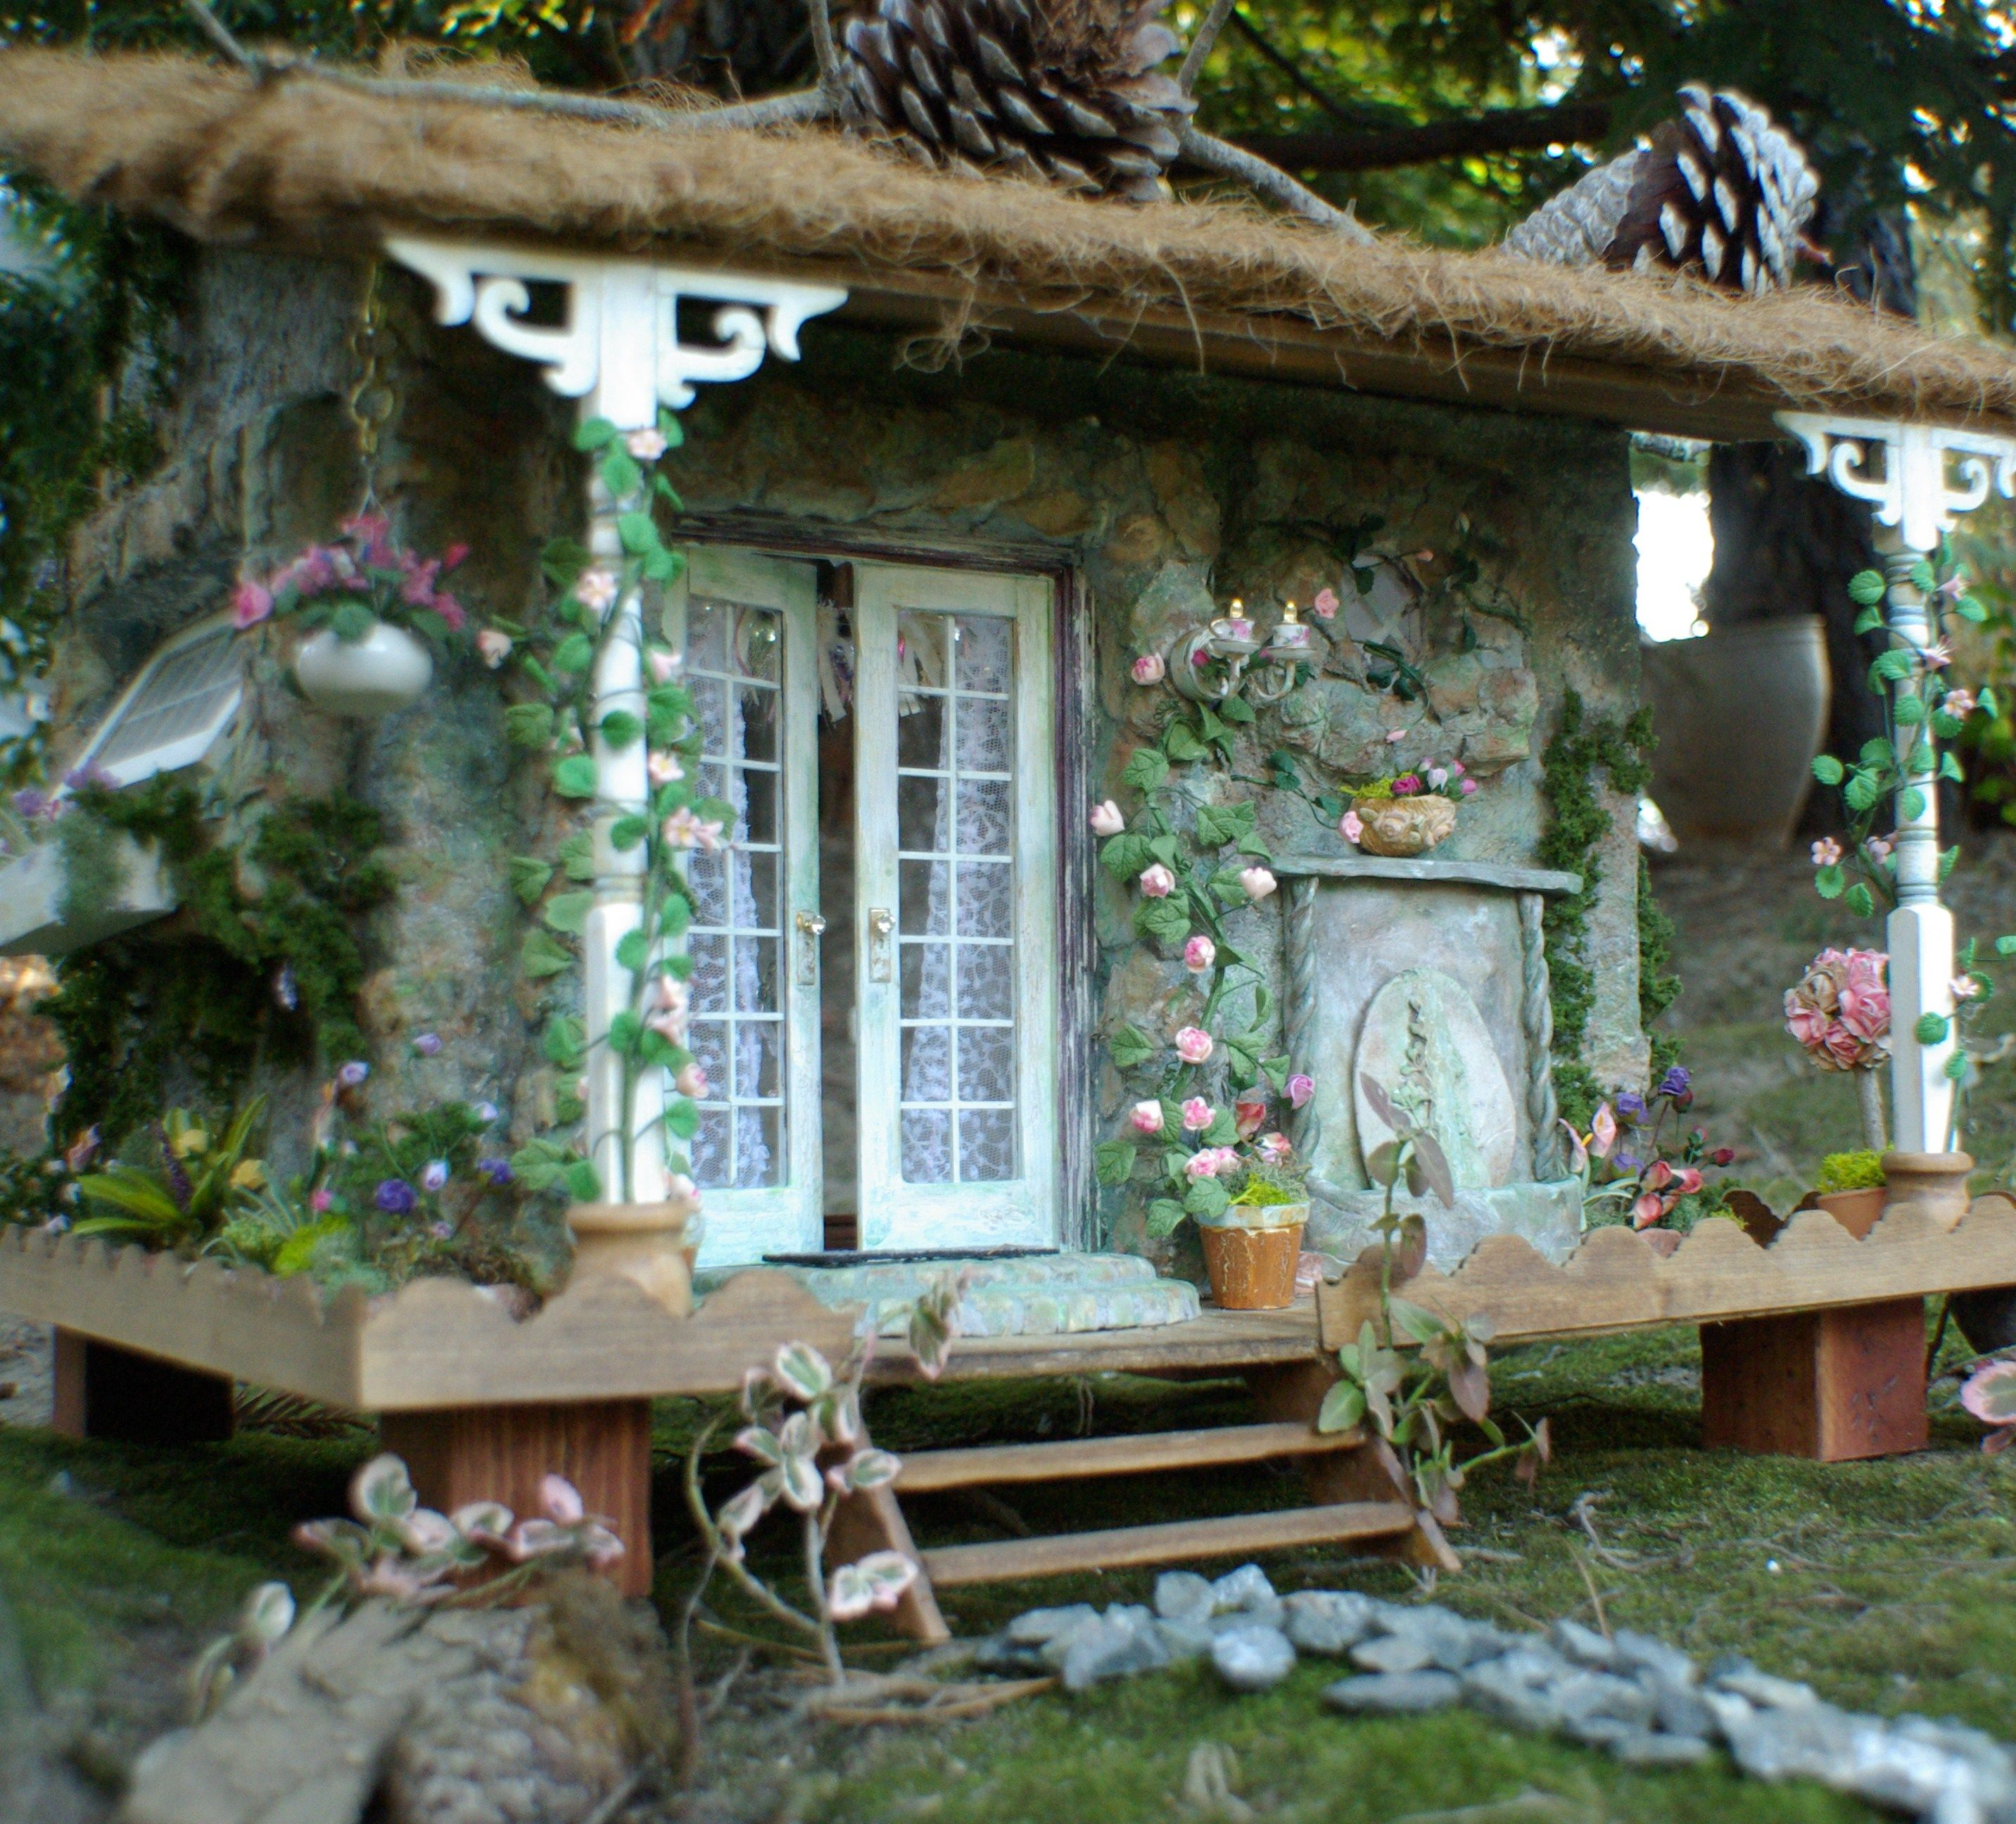 Kammys Creations Miniature 1:12 scale My English Cottage